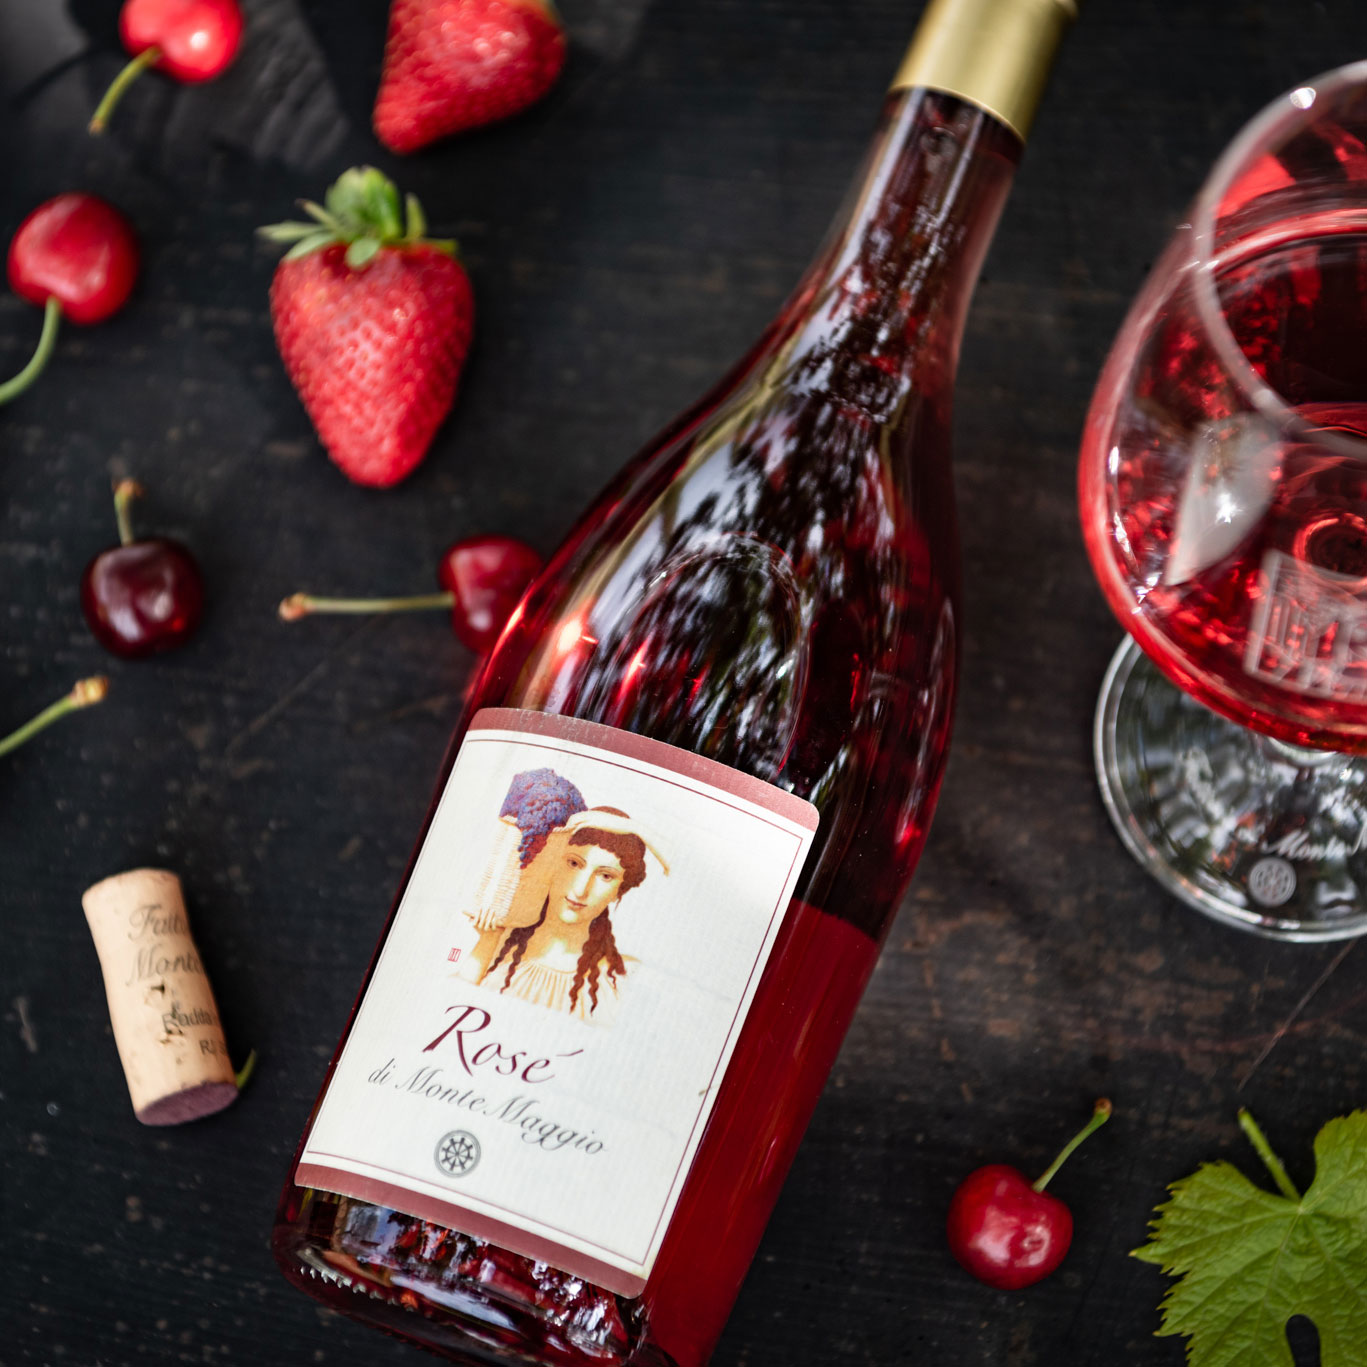 Rosé di Montemaggio has a fruity bouquet which is perfect on a summer day